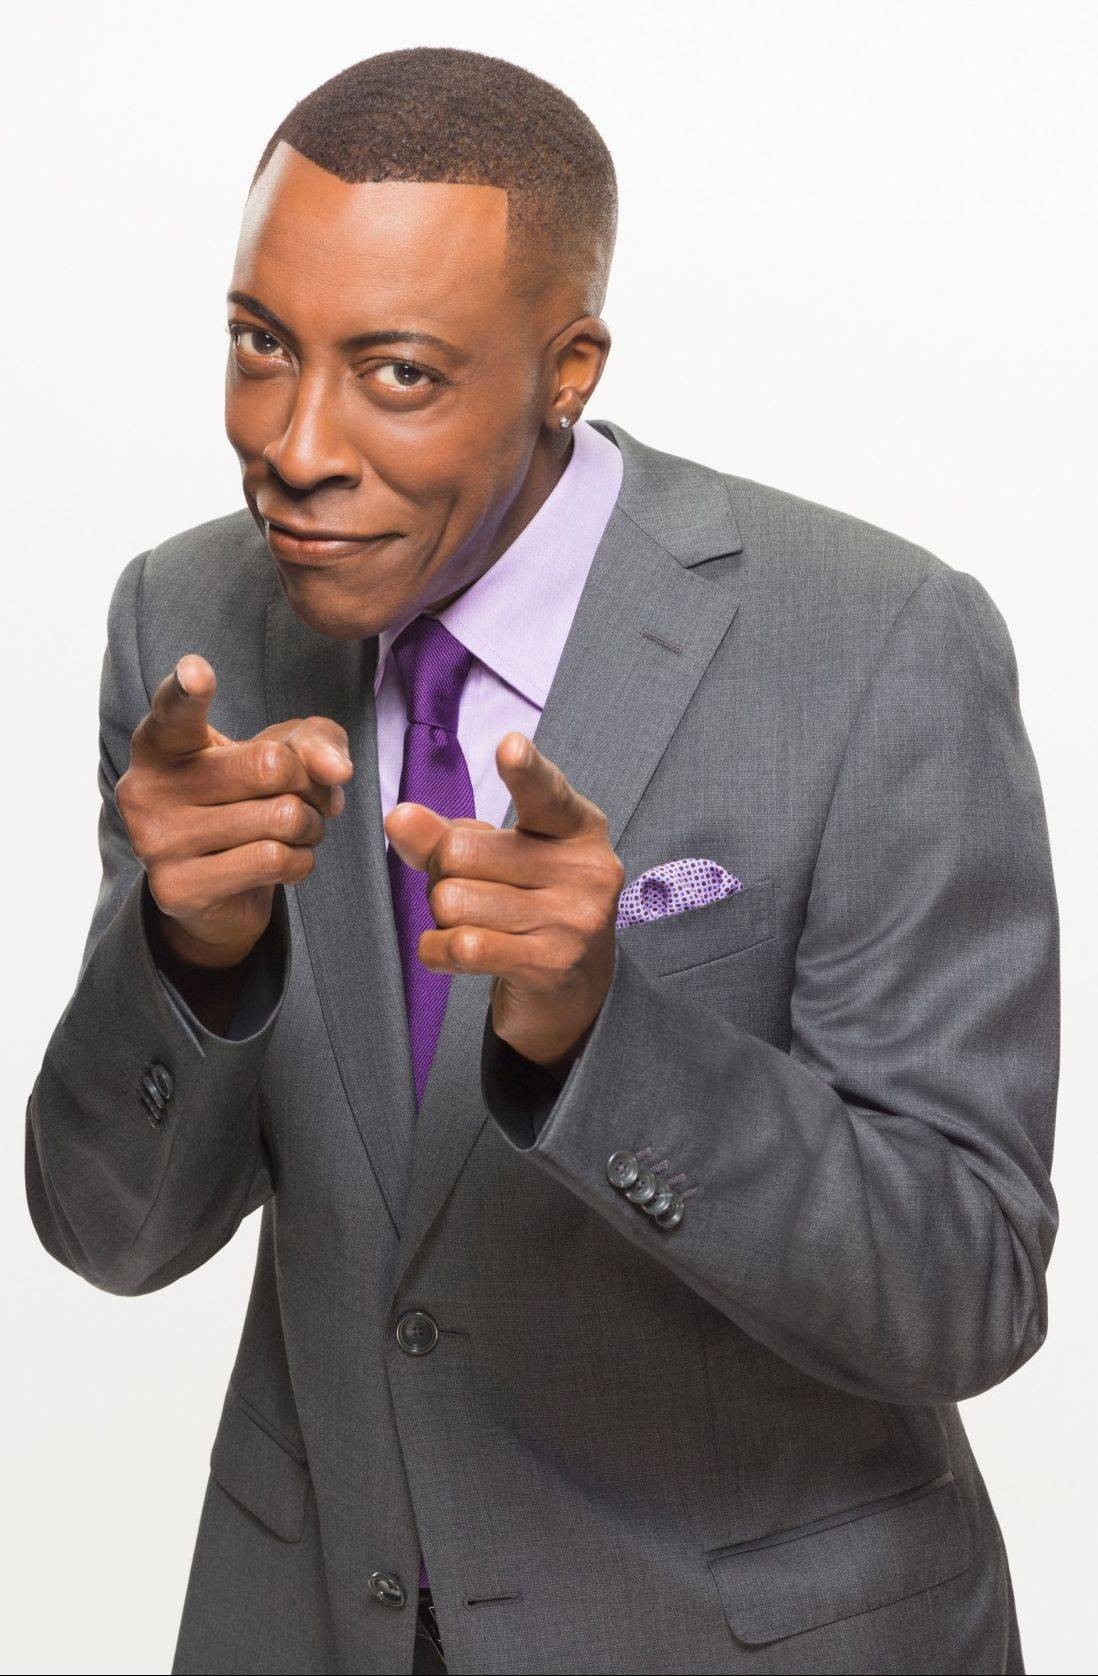 """The Arsenio Hall Show"" is scheduled to air this fall on CBS."